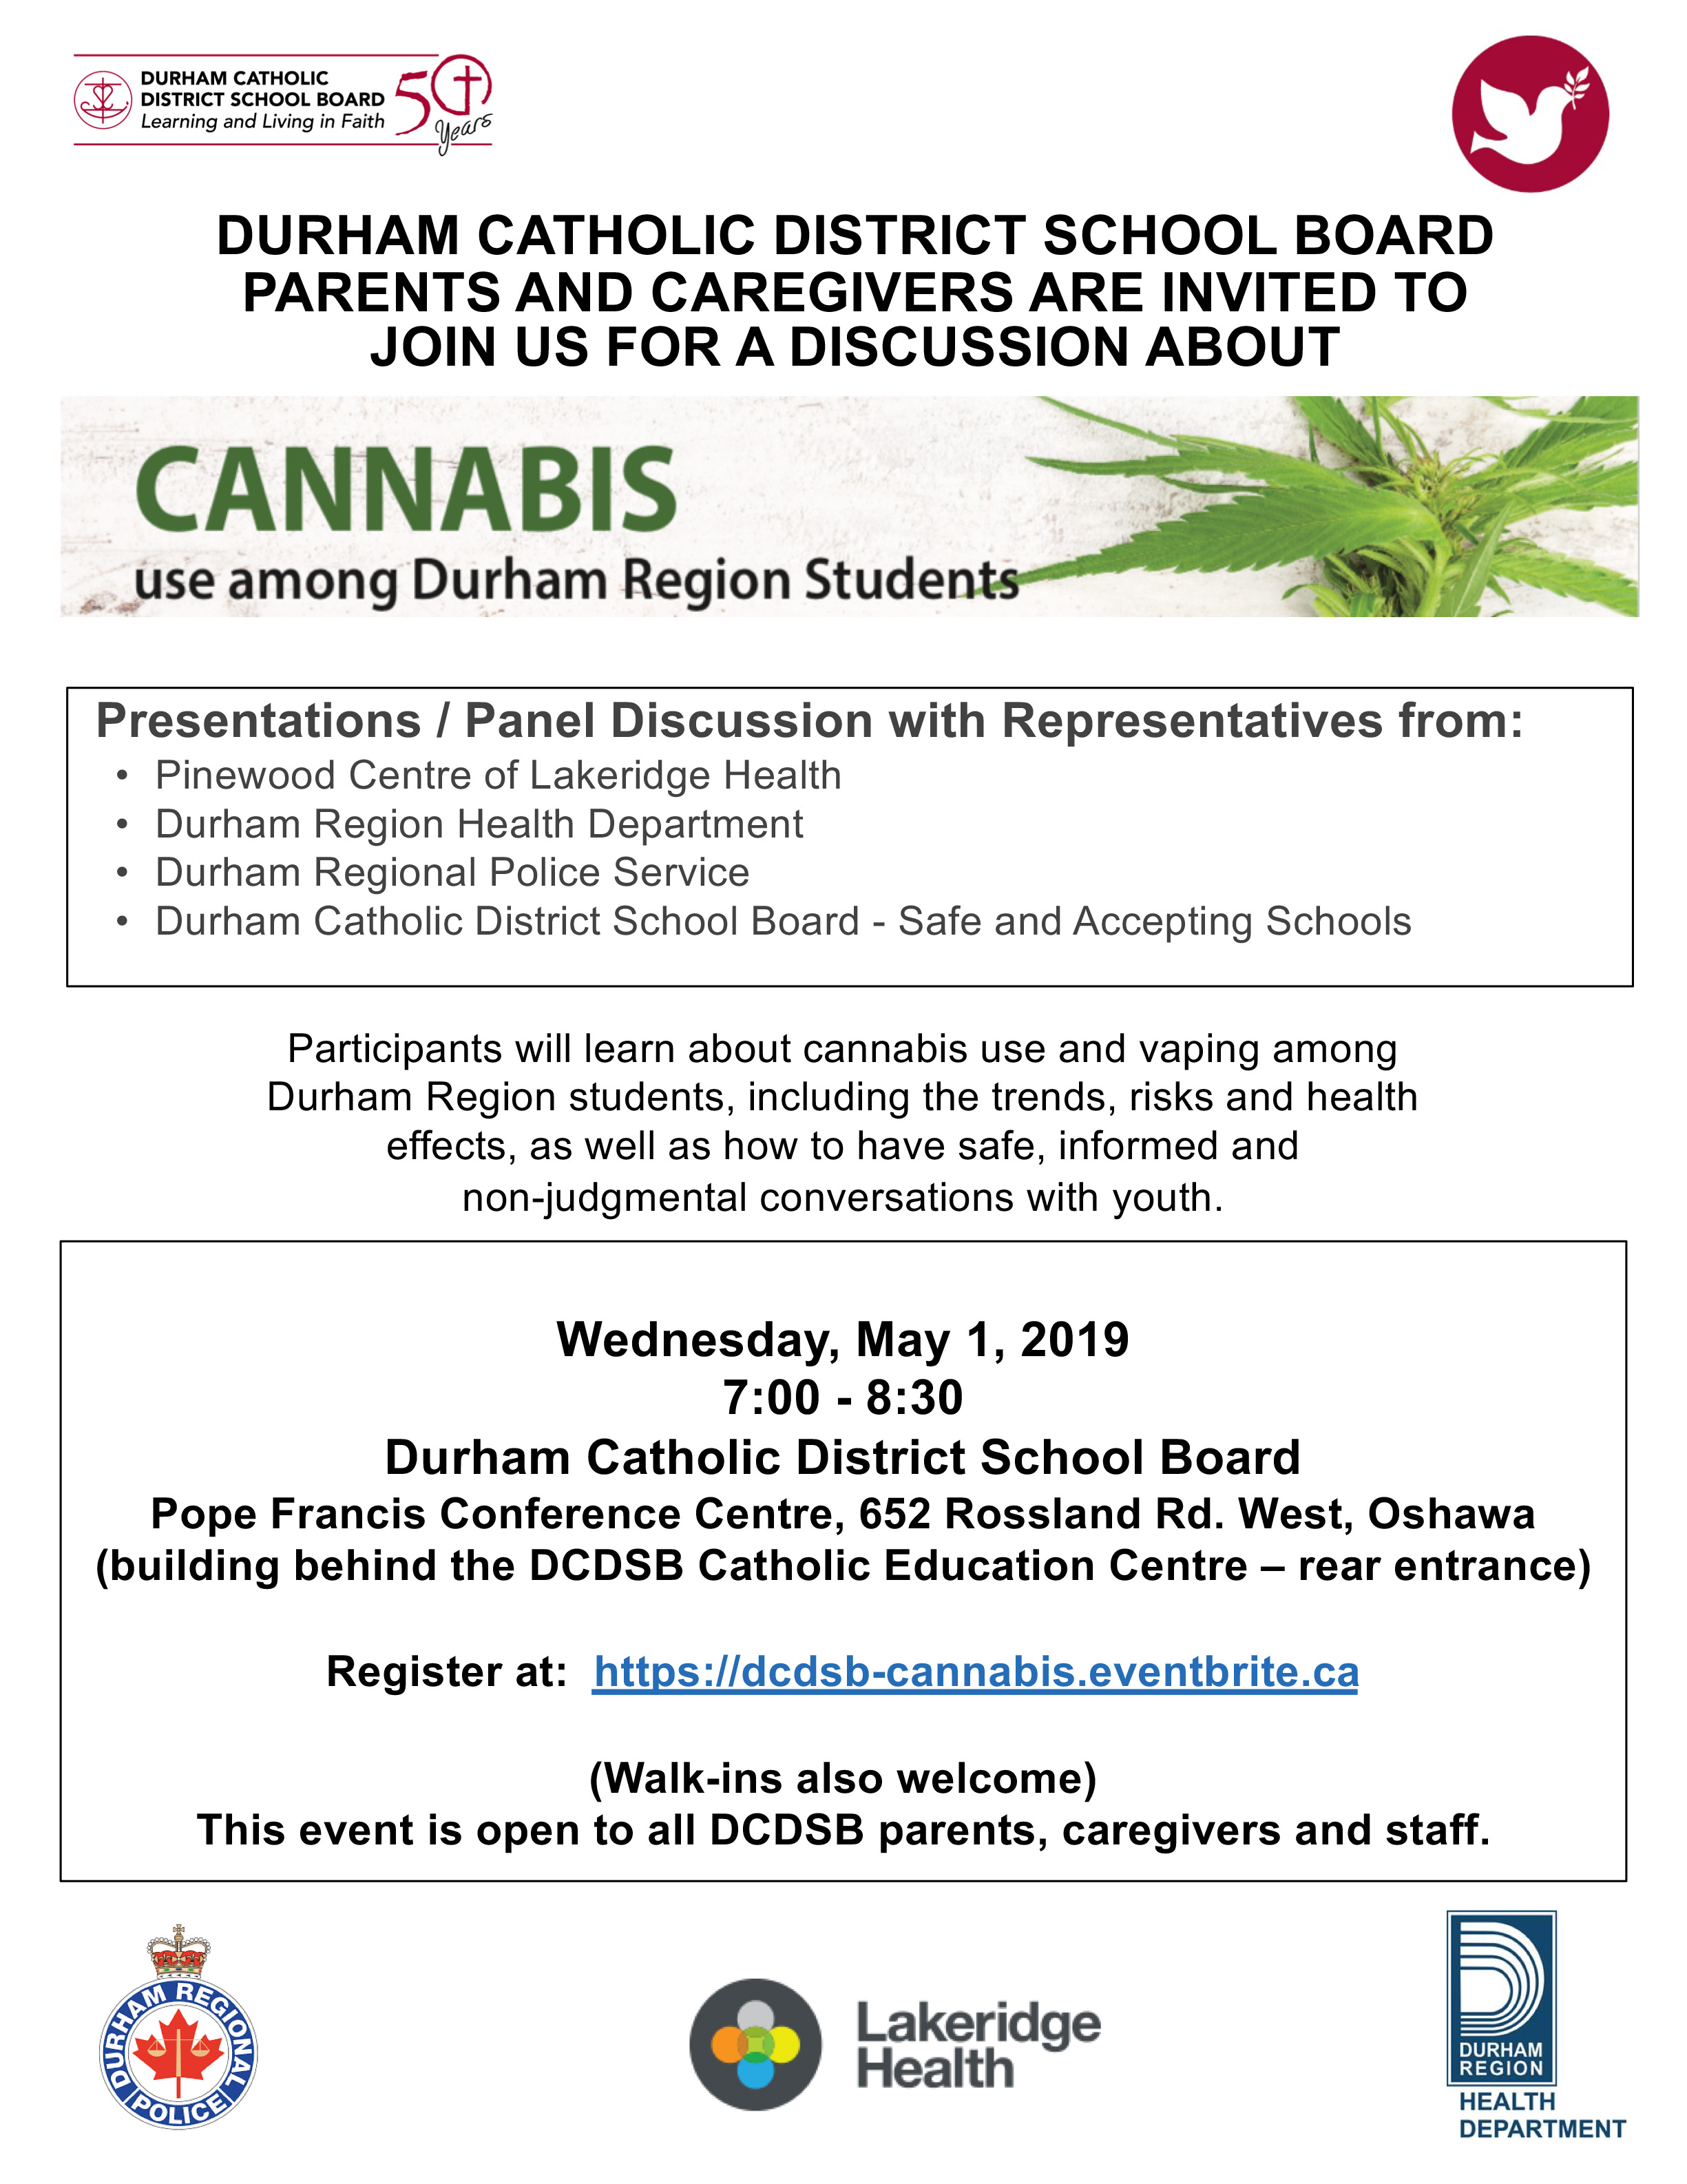 Flyer promoting presentation on Cannabis use among Durham Region students